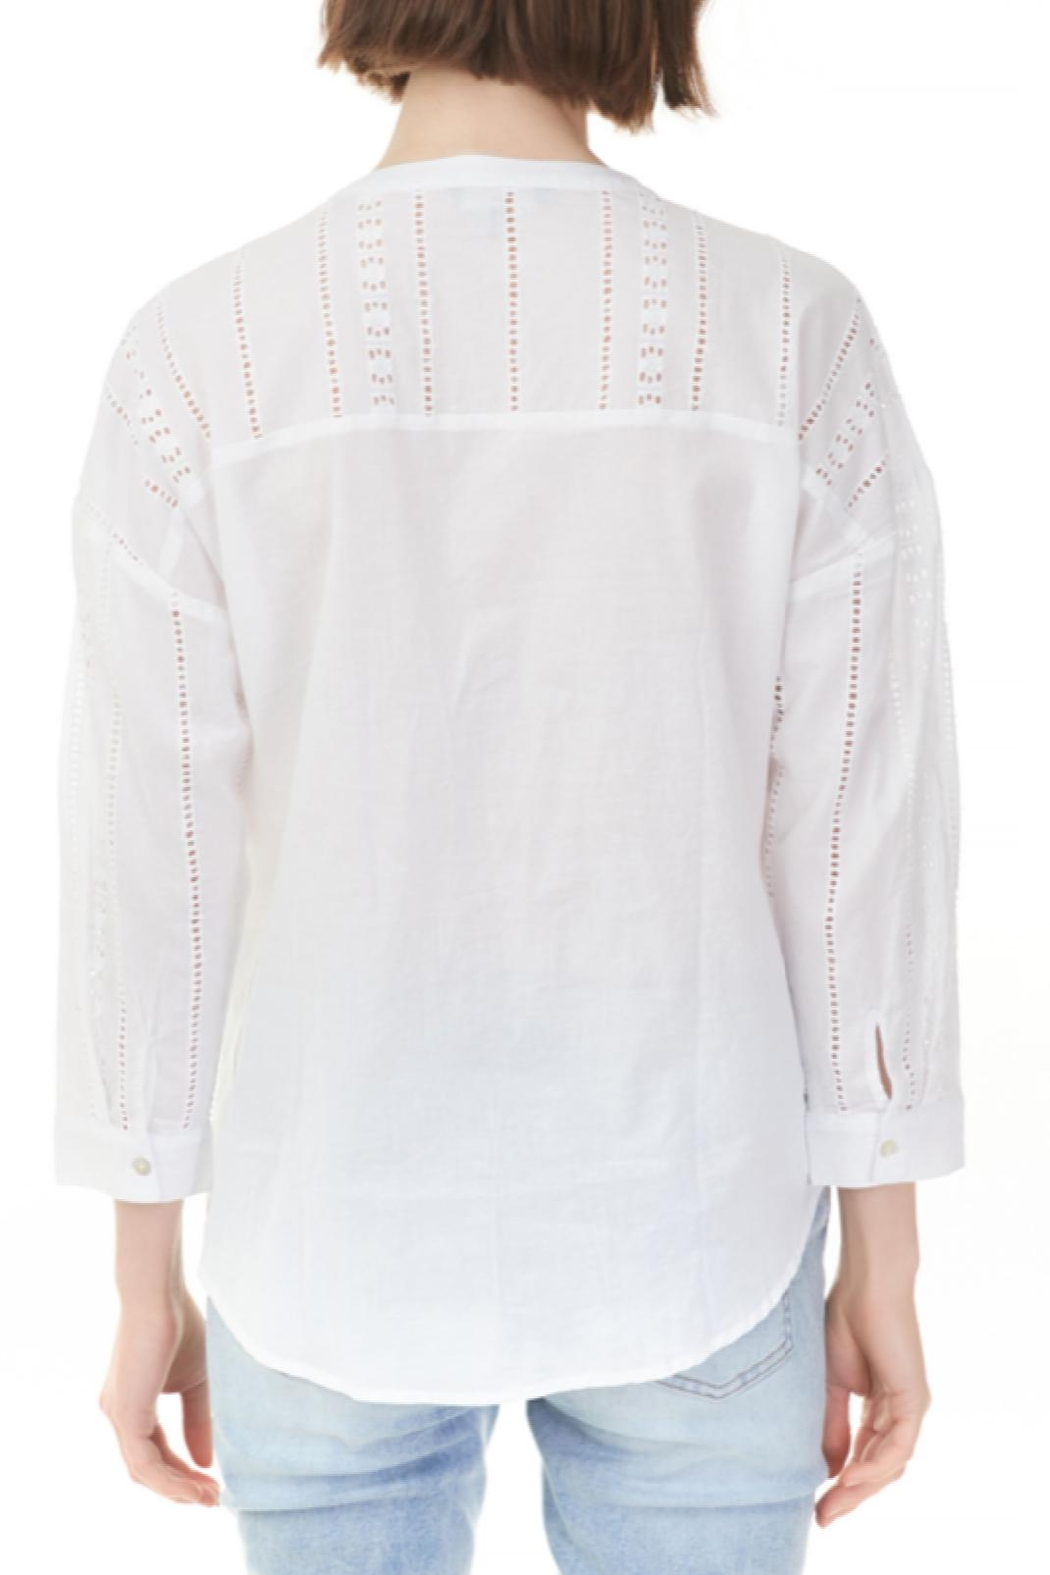 Charlie B. Cotton Eyelet Top - Front Full Image